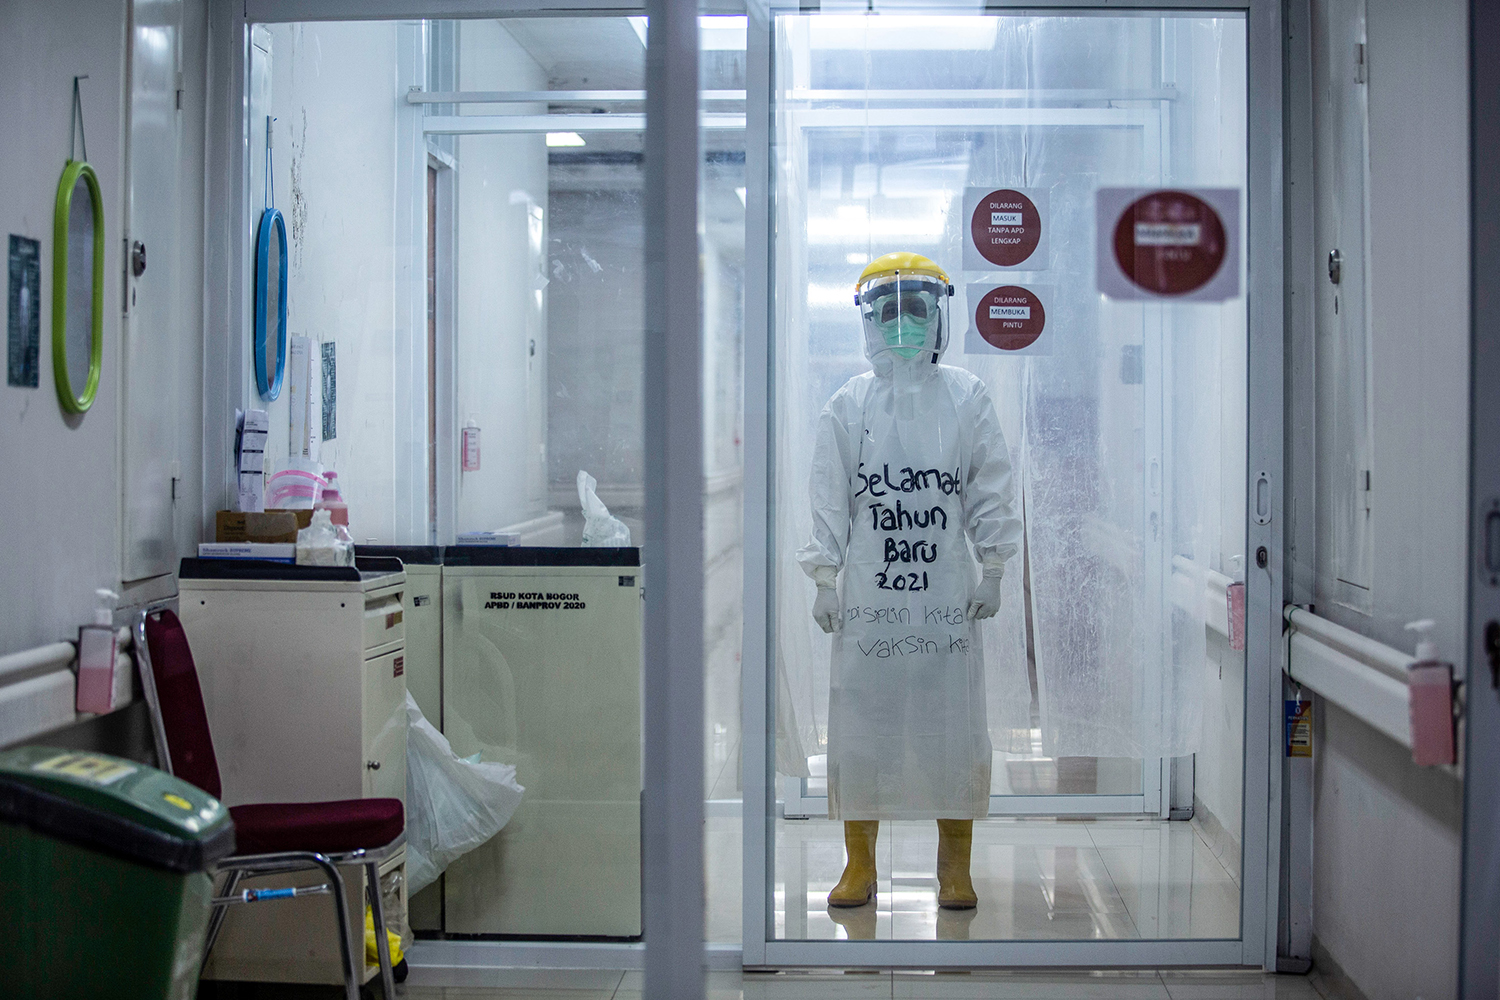 """A medical worker wears personal protective equipment marked with the words """"Happy New Year 2021"""" to encourage COVID-19 patients at the Bogor City Hospital in West Java, Indonesia, on Jan. 1. ADITYA AJI/AFP via Getty Images"""